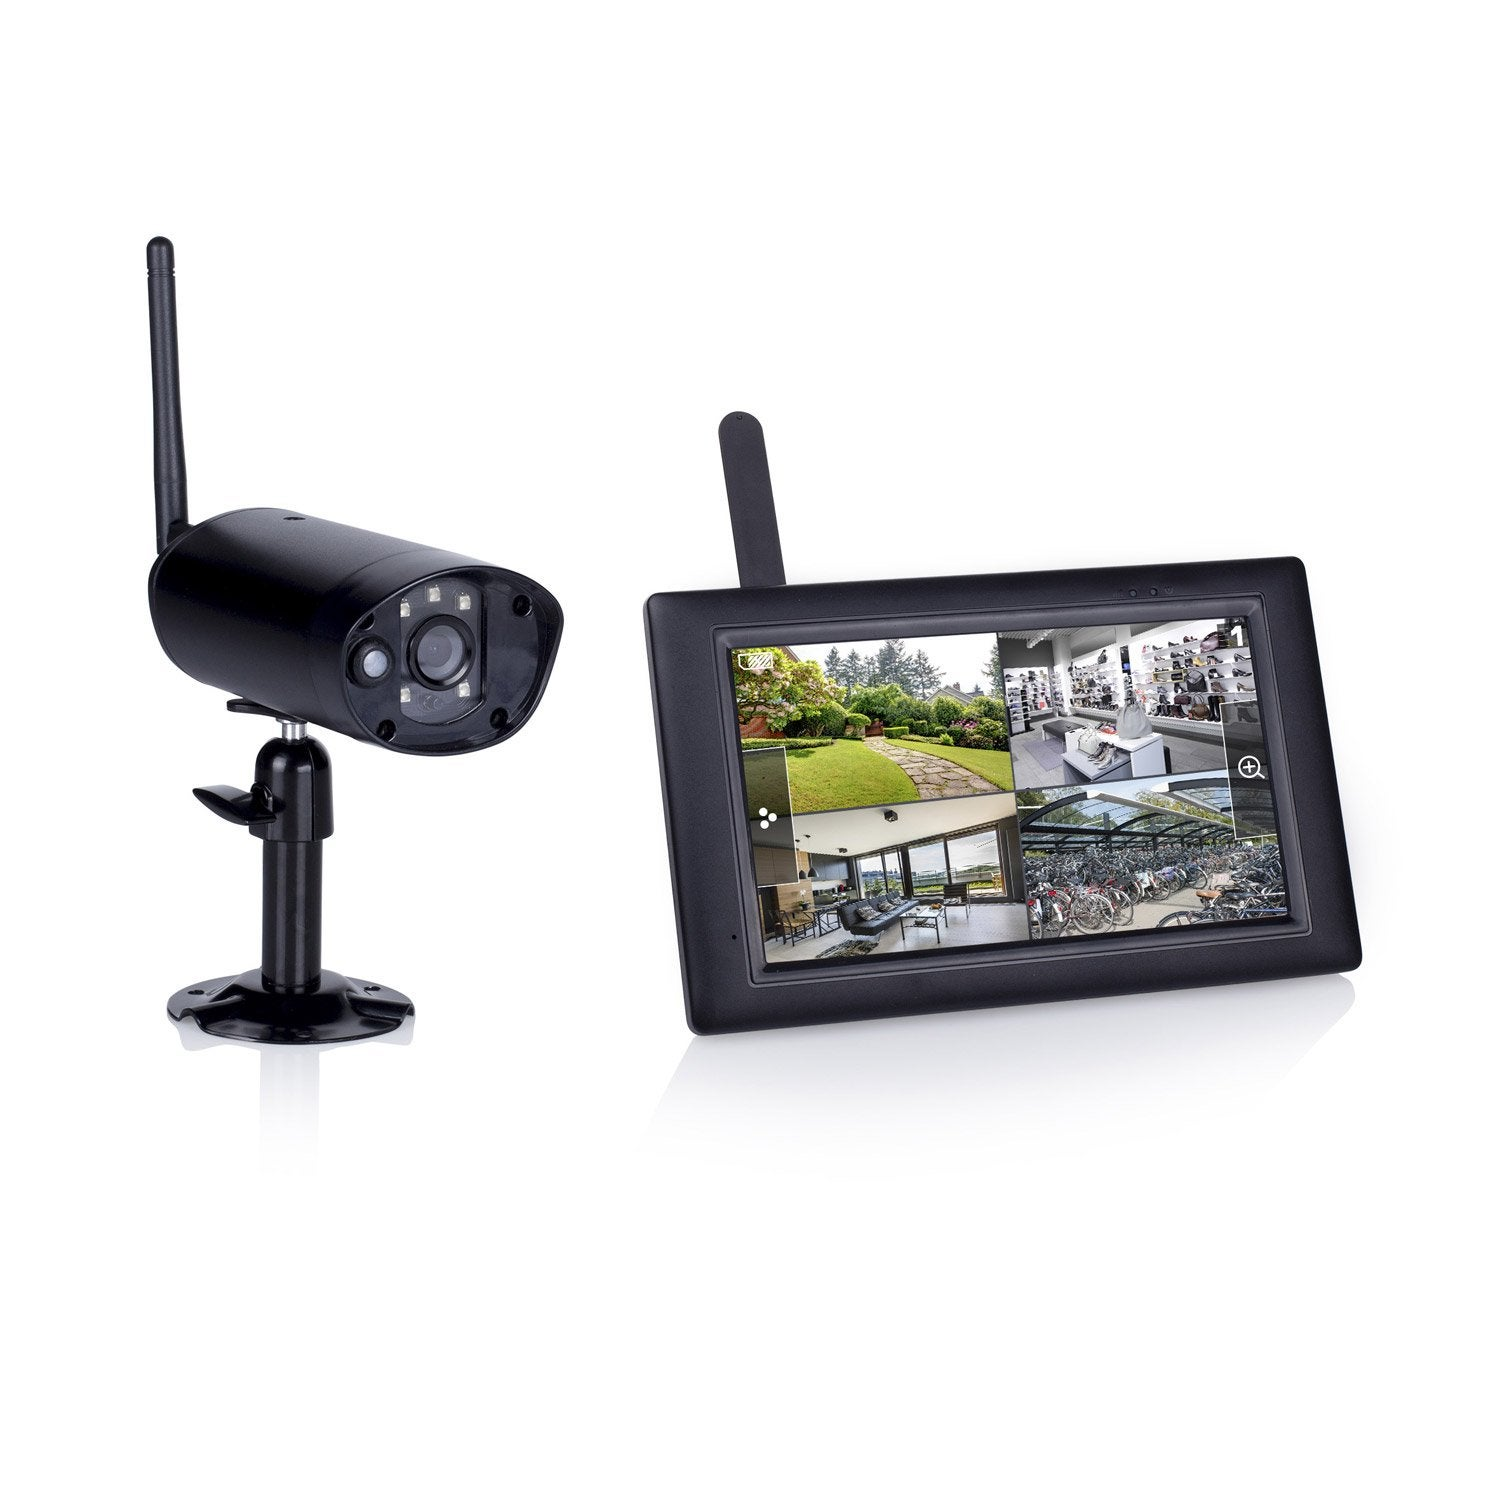 Kit de vid osurveillance connect sans fil int rieur - Camera factice leroy merlin ...